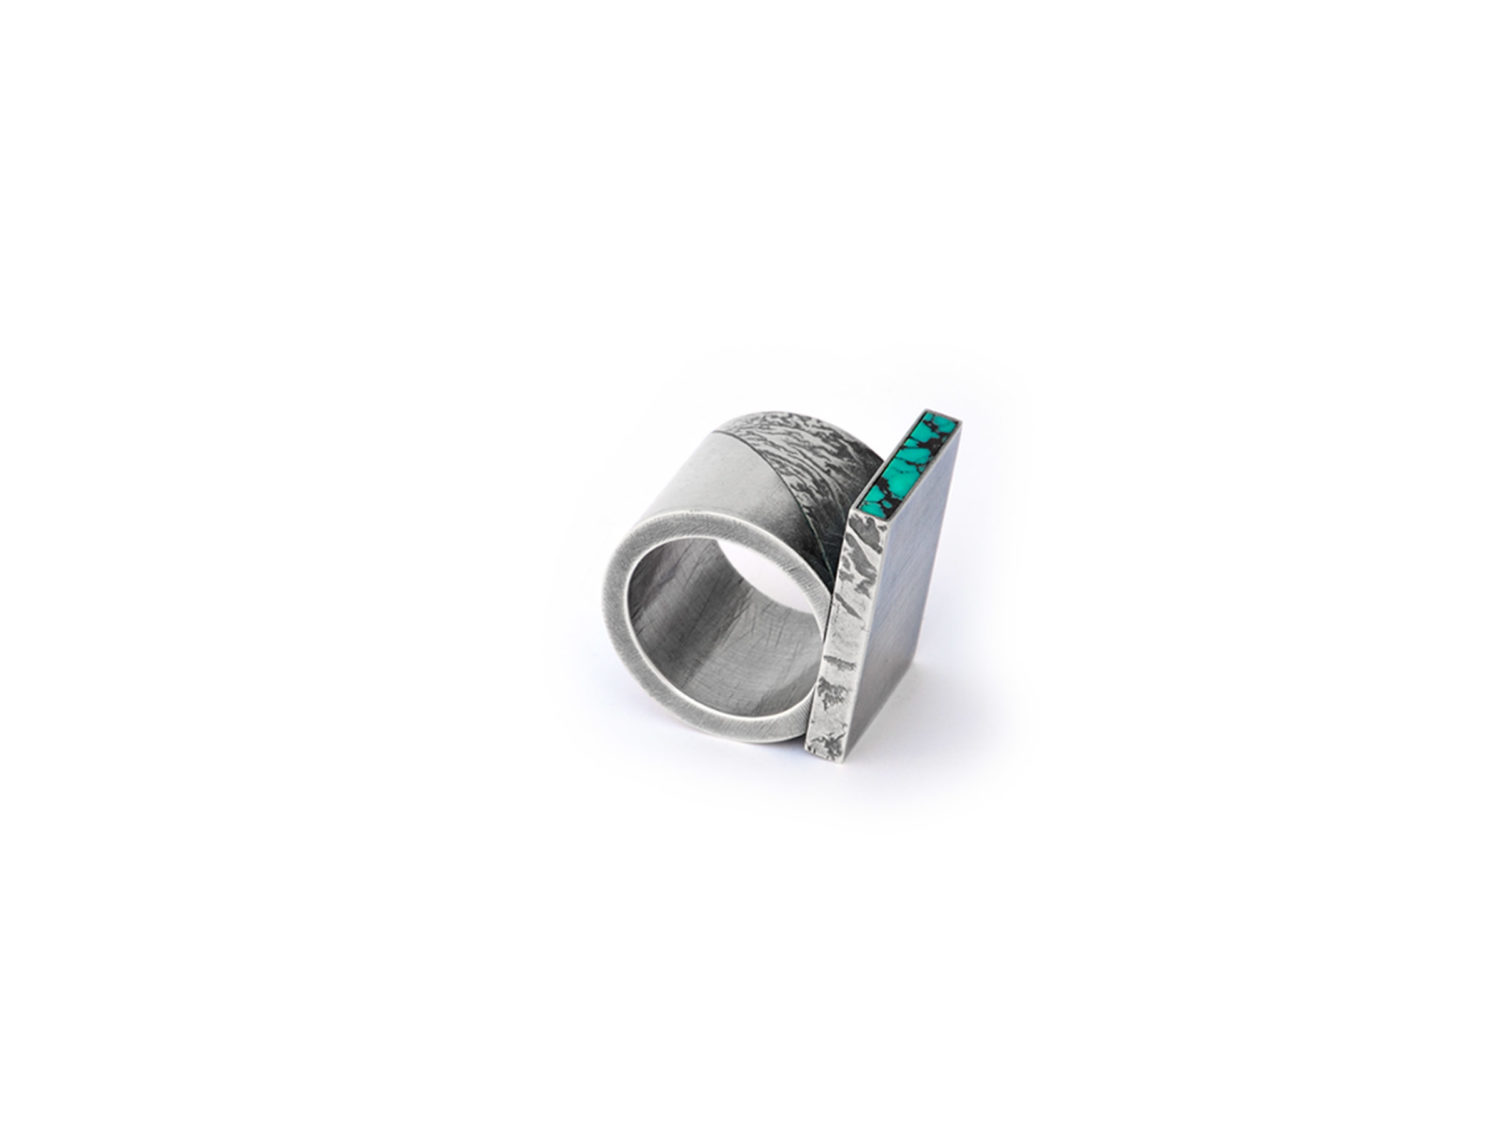 Ring, oxidized silver, turquoise, 2010